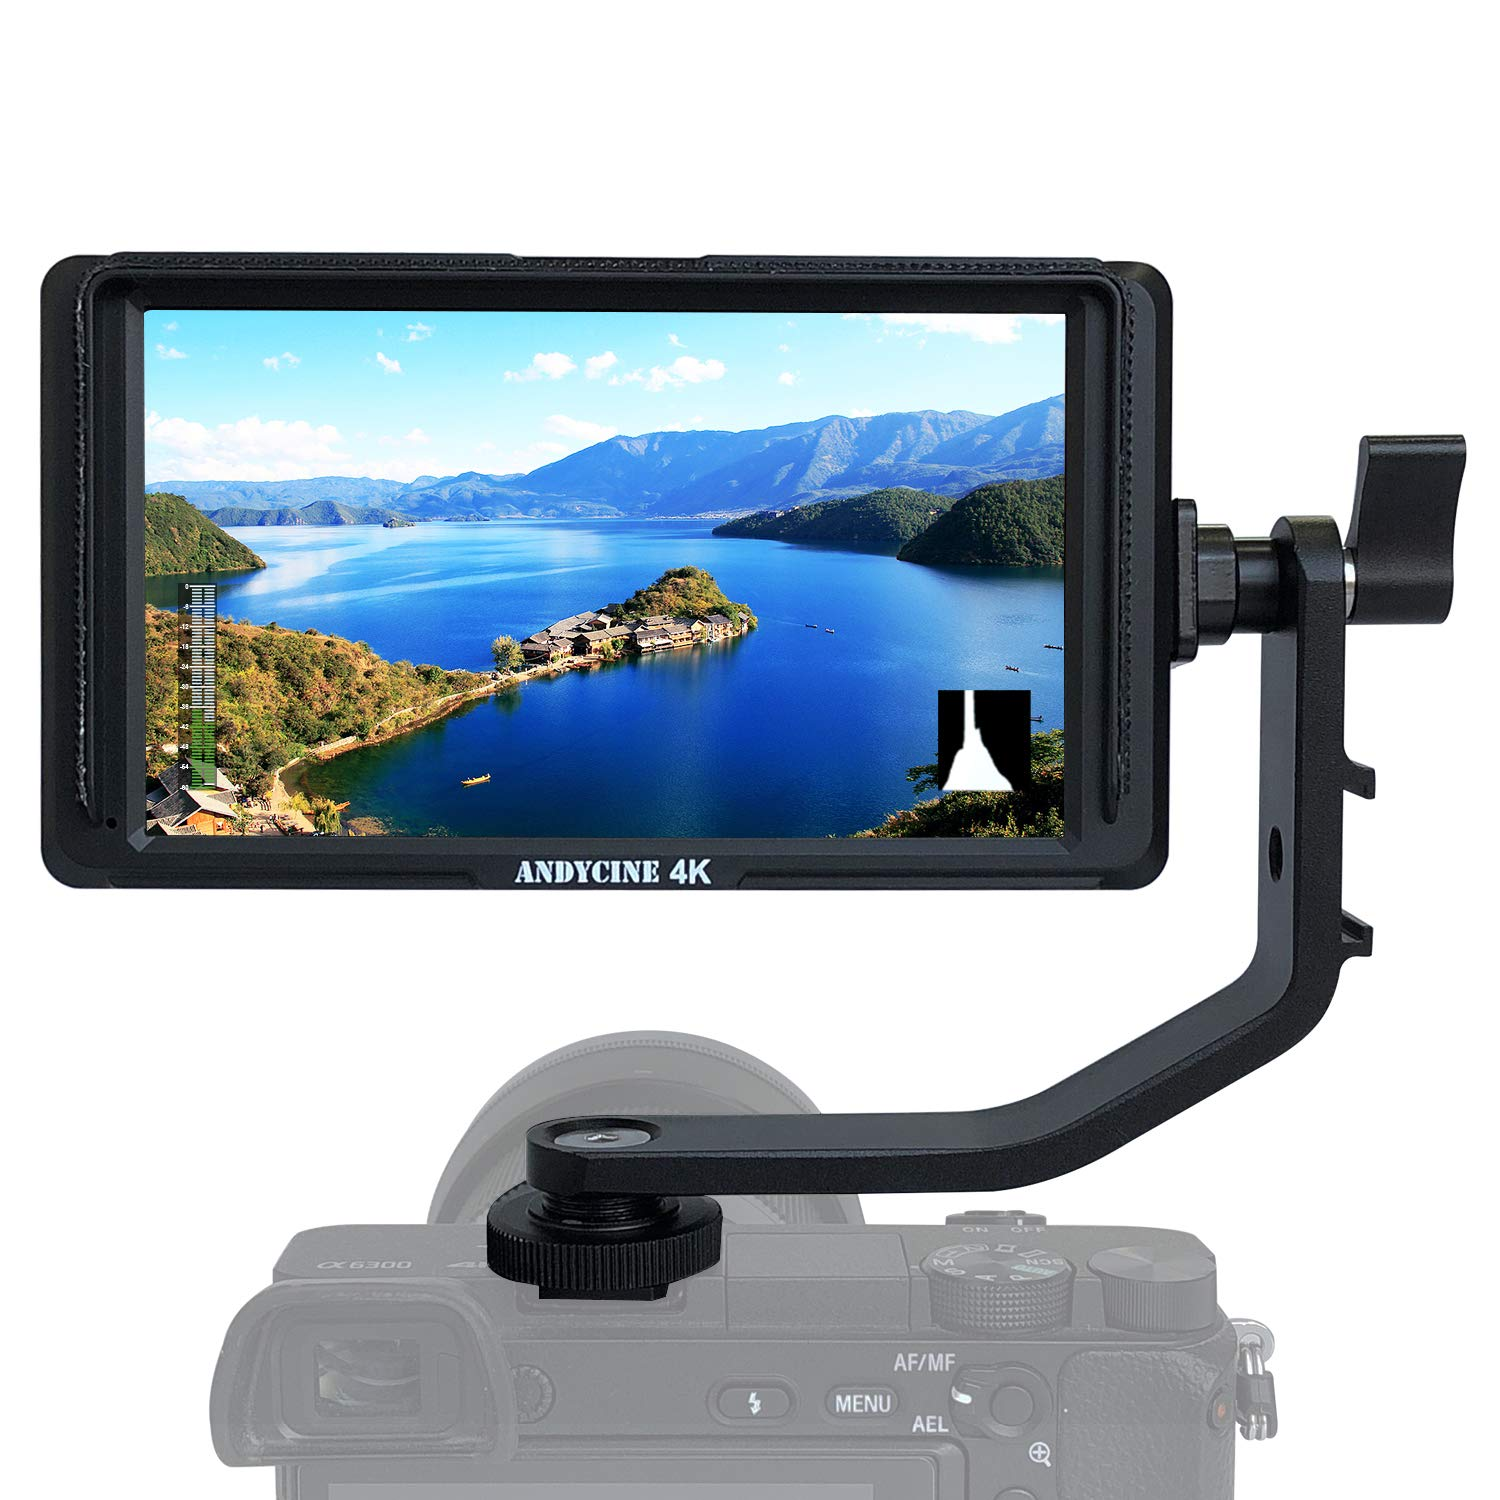 ANDYCINE A6 Lite 5inch DSLR HDMI Camera Field Monitor 1920x1080 Video Peaking Focus assits HDMI Input and Output DC Output with Tilt Arm